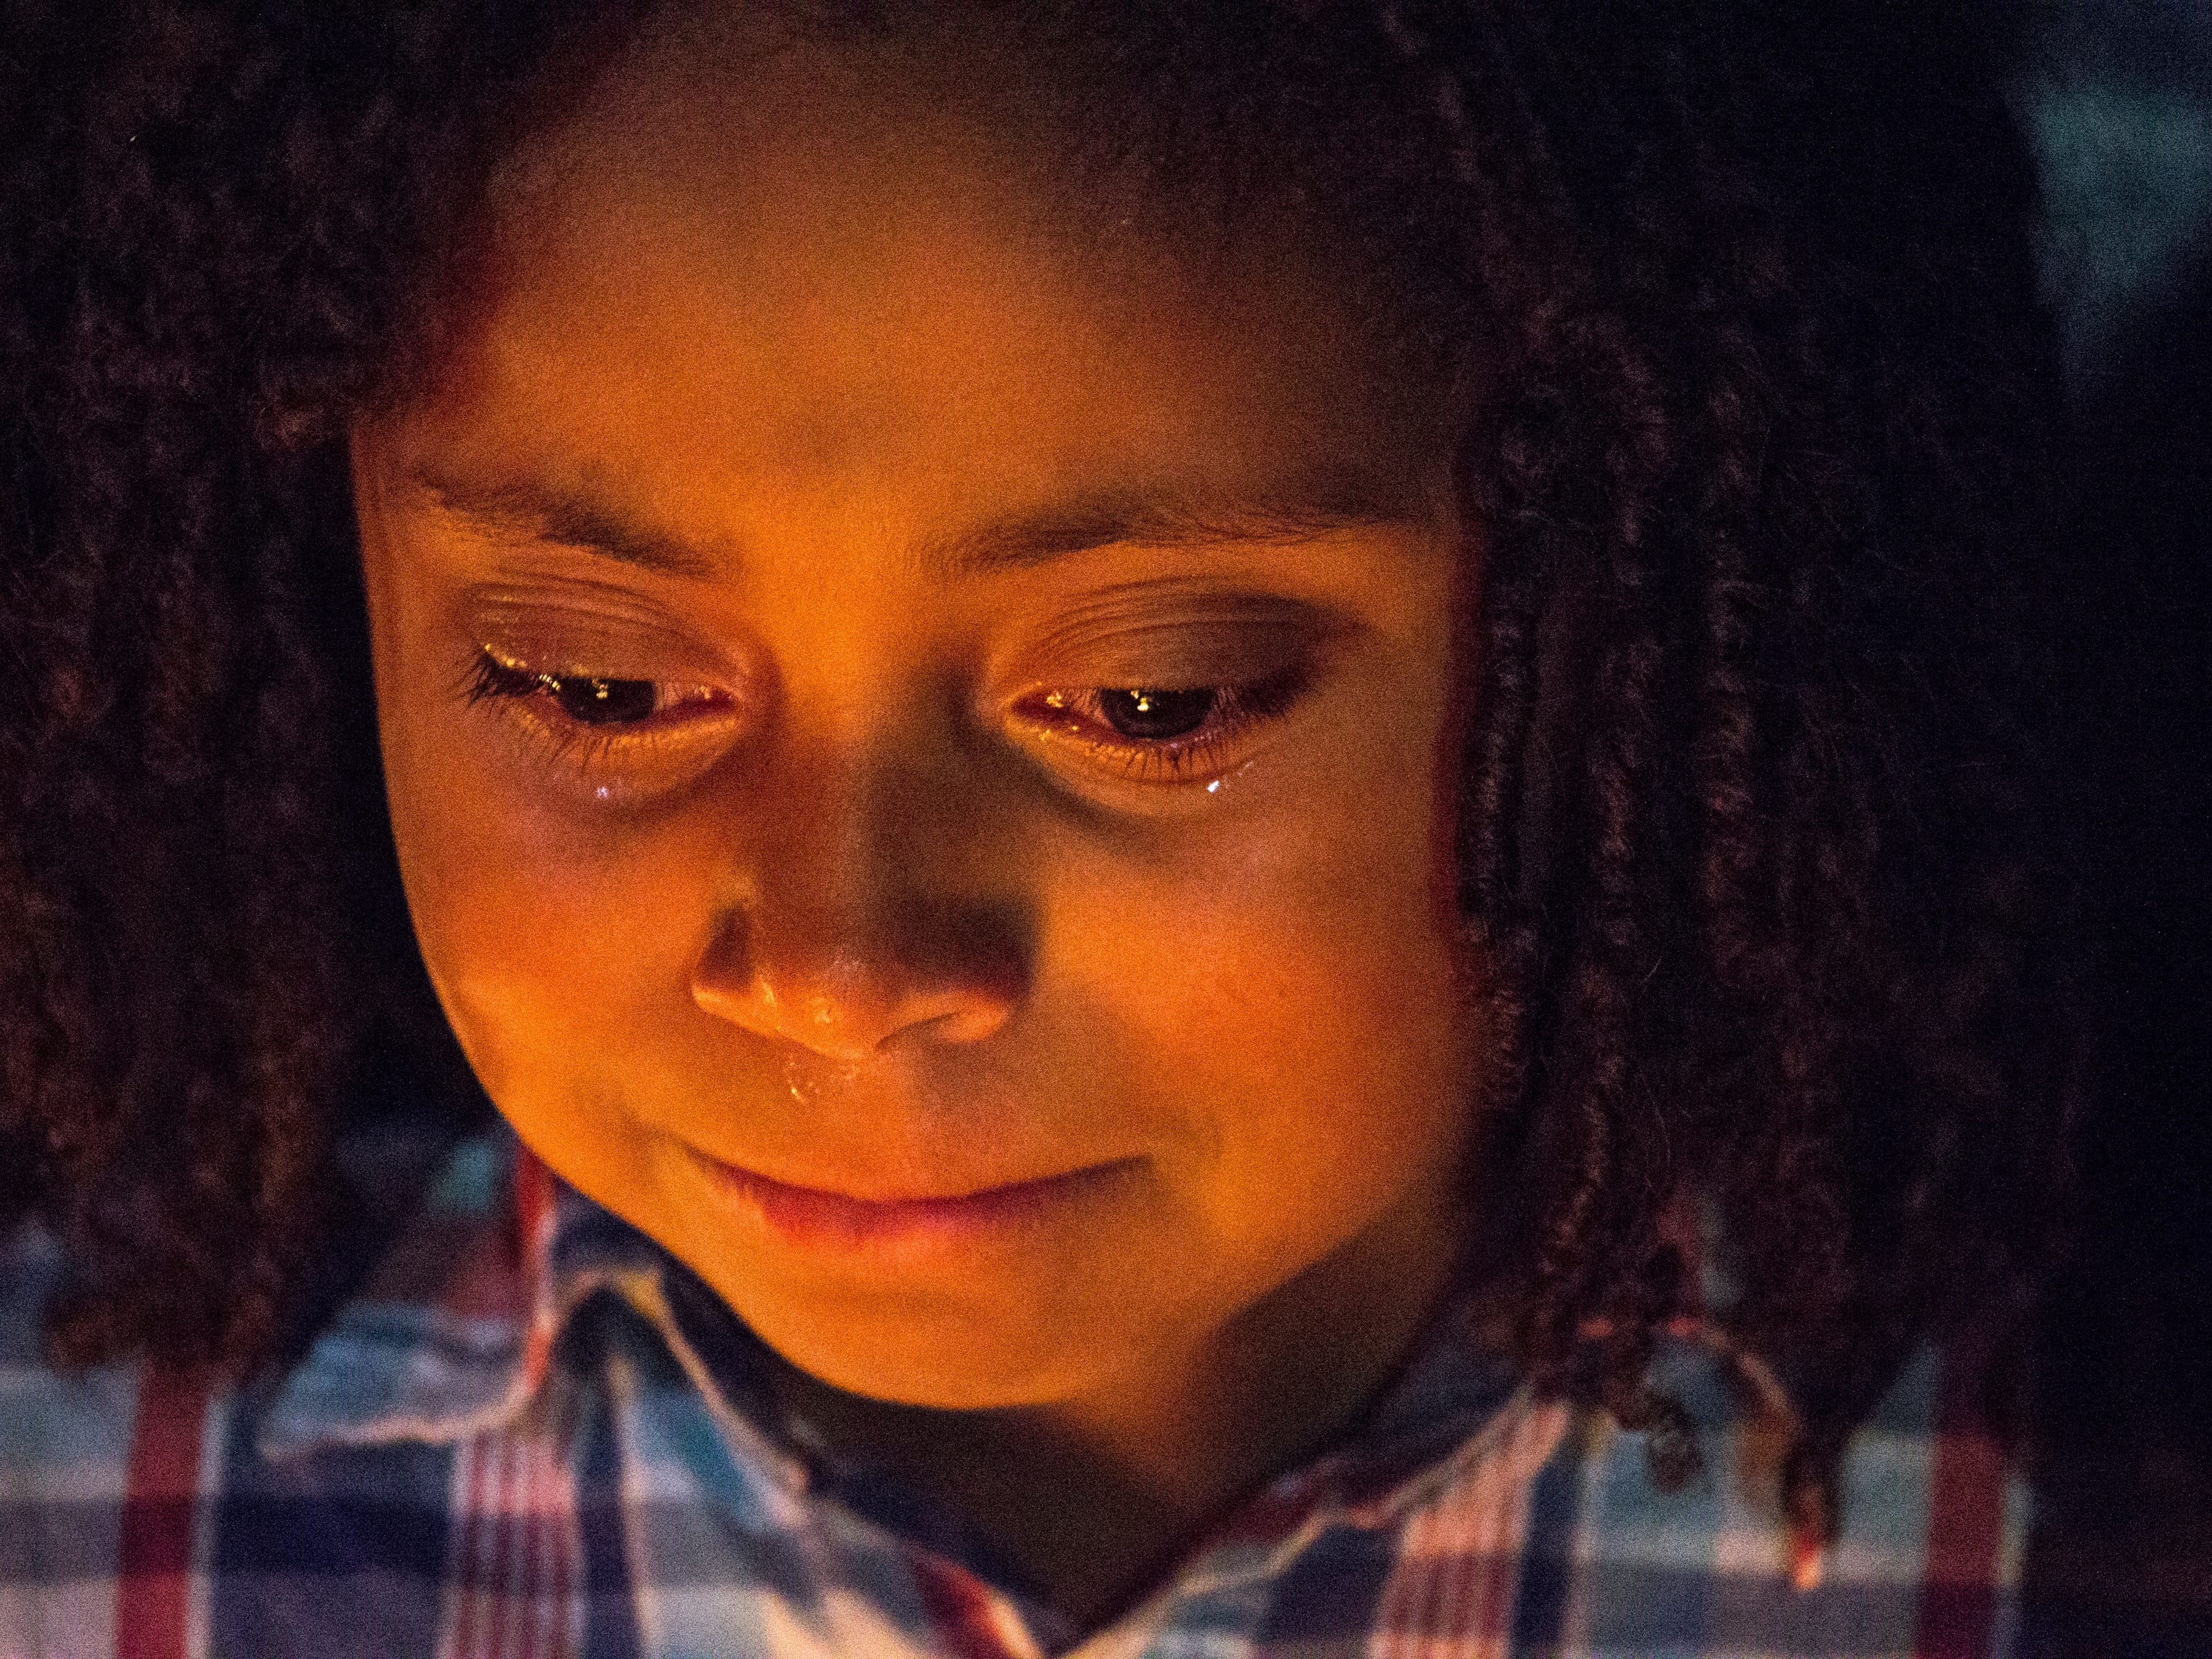 Valencia (last name withheld) grieves during a vigil for Summer Bell Brown on April 5, 2019.